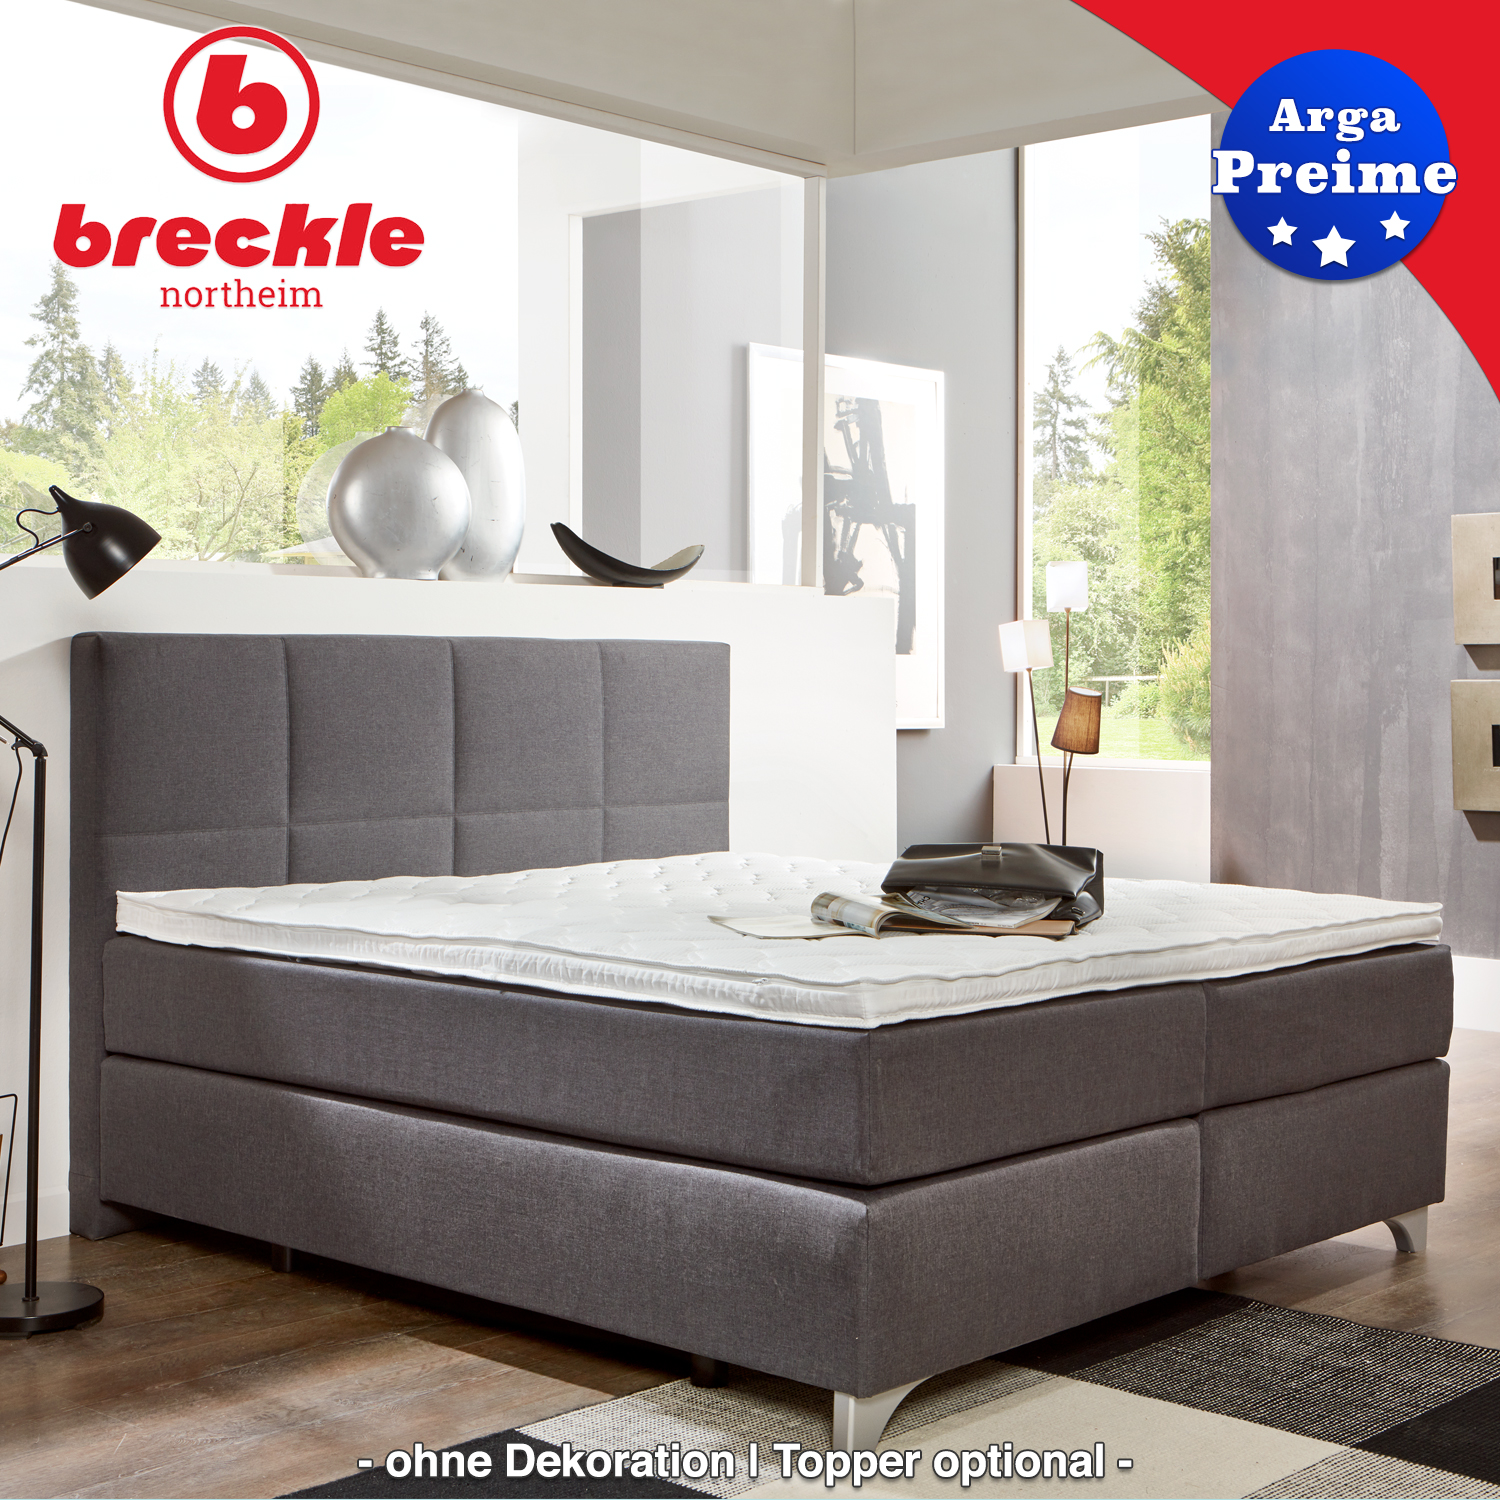 bettdecken werksverkauf bettw sche grau biber poco komplett schlafzimmer lampe beige h m. Black Bedroom Furniture Sets. Home Design Ideas